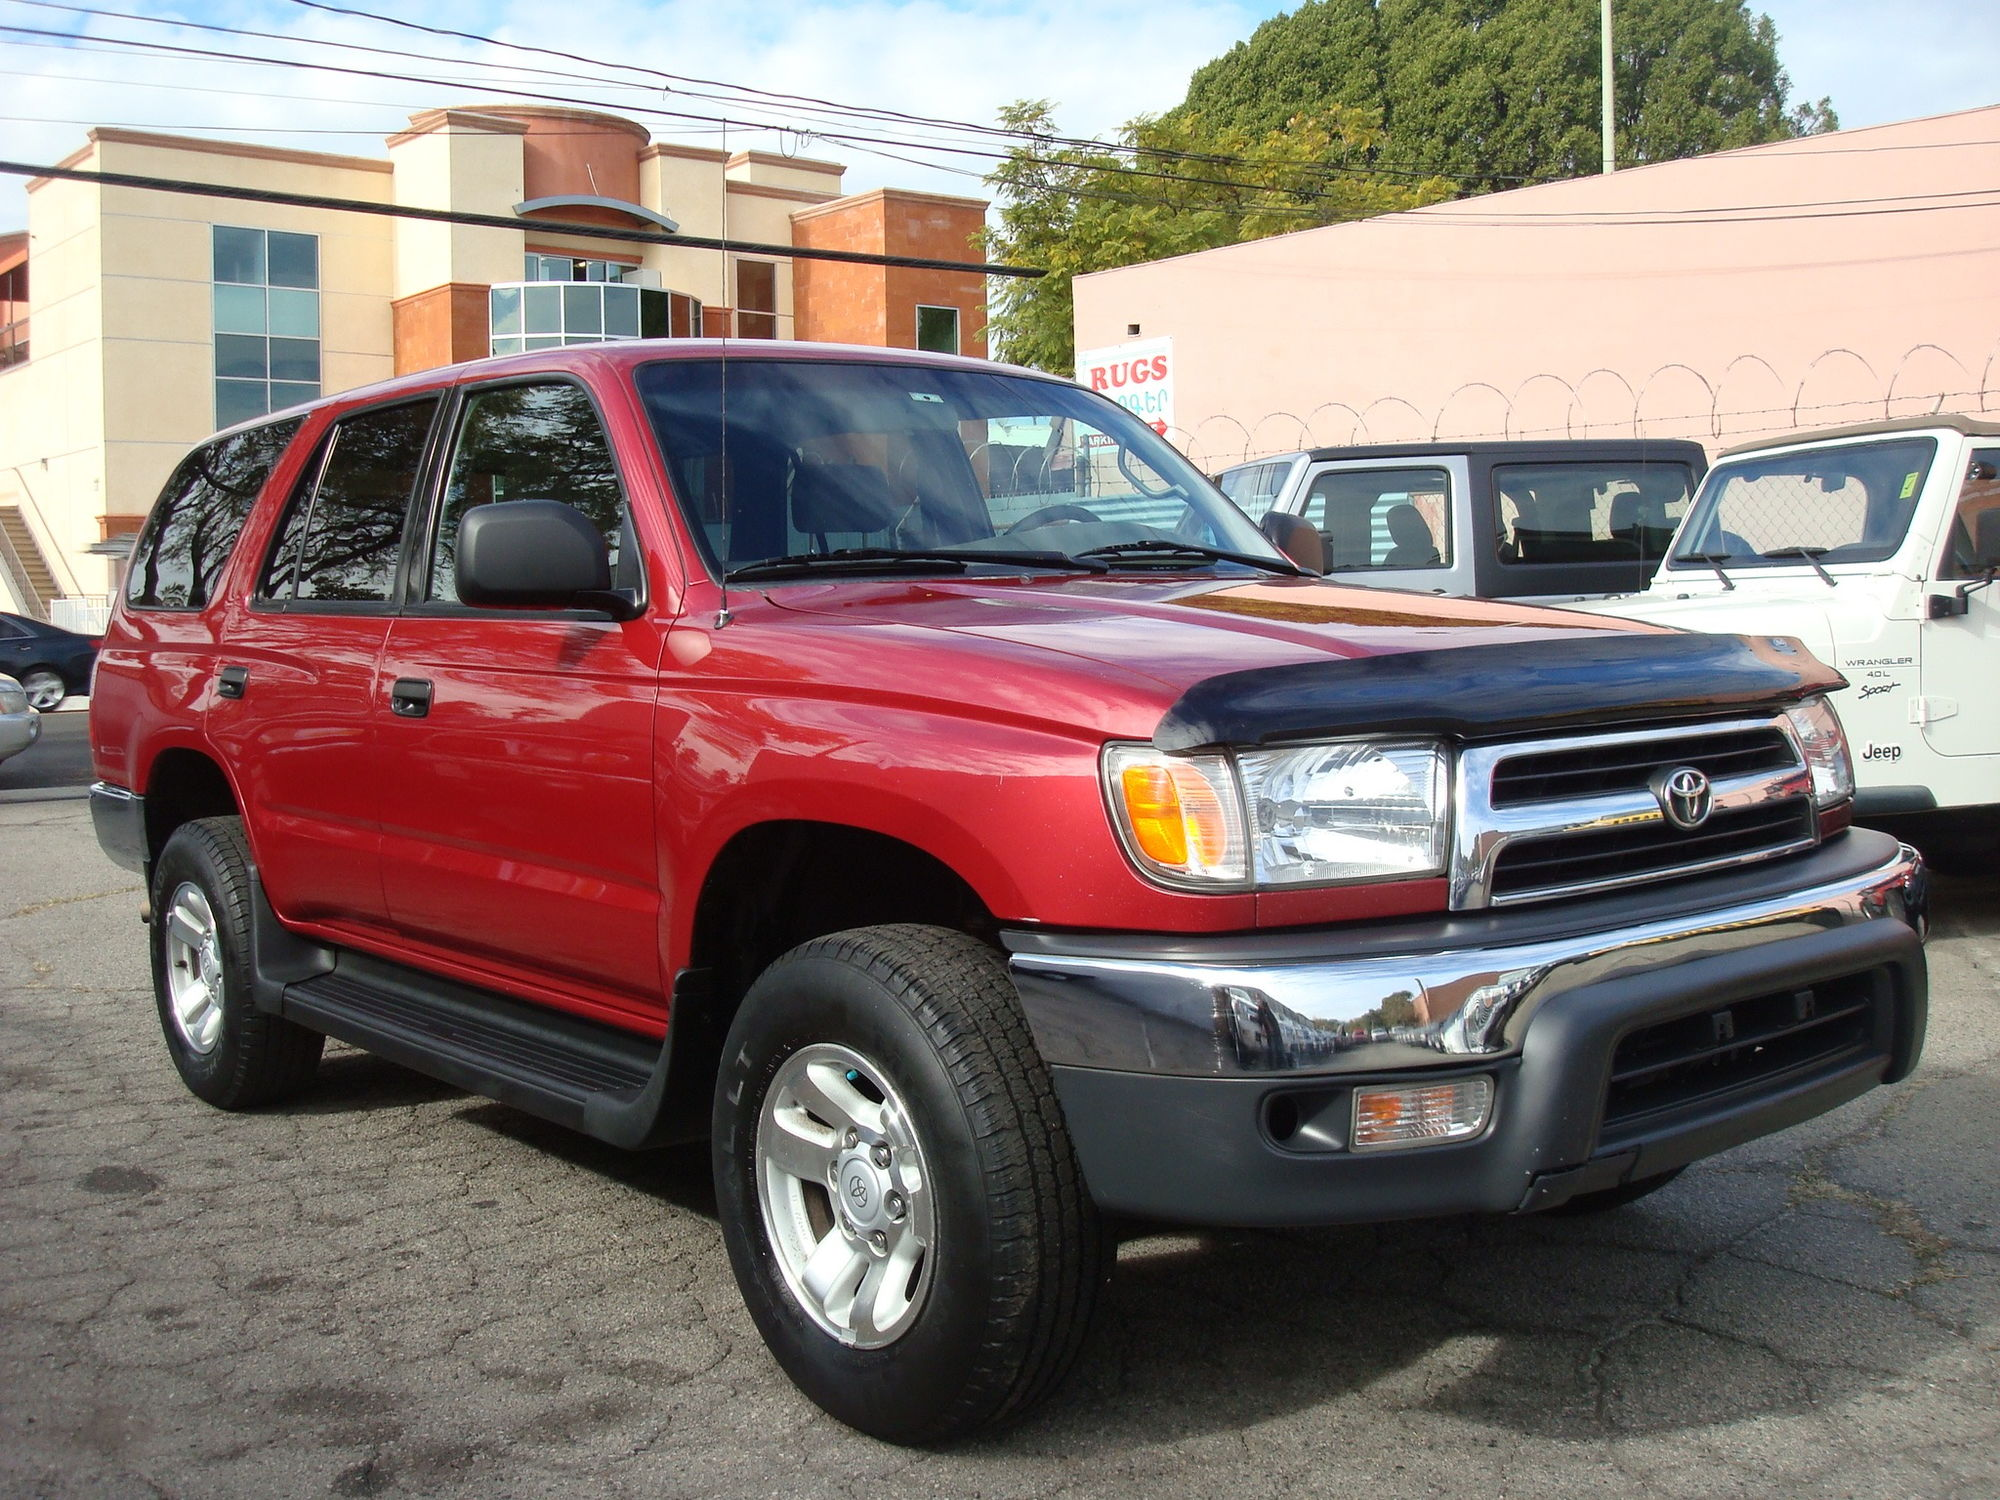 2000 4runner 27l 4x4 5spd Price Yotatech Forums Fuel Filter Location 147000 Miles Manual 8995 Http Drivetoyotalexuscom Listing Cyl